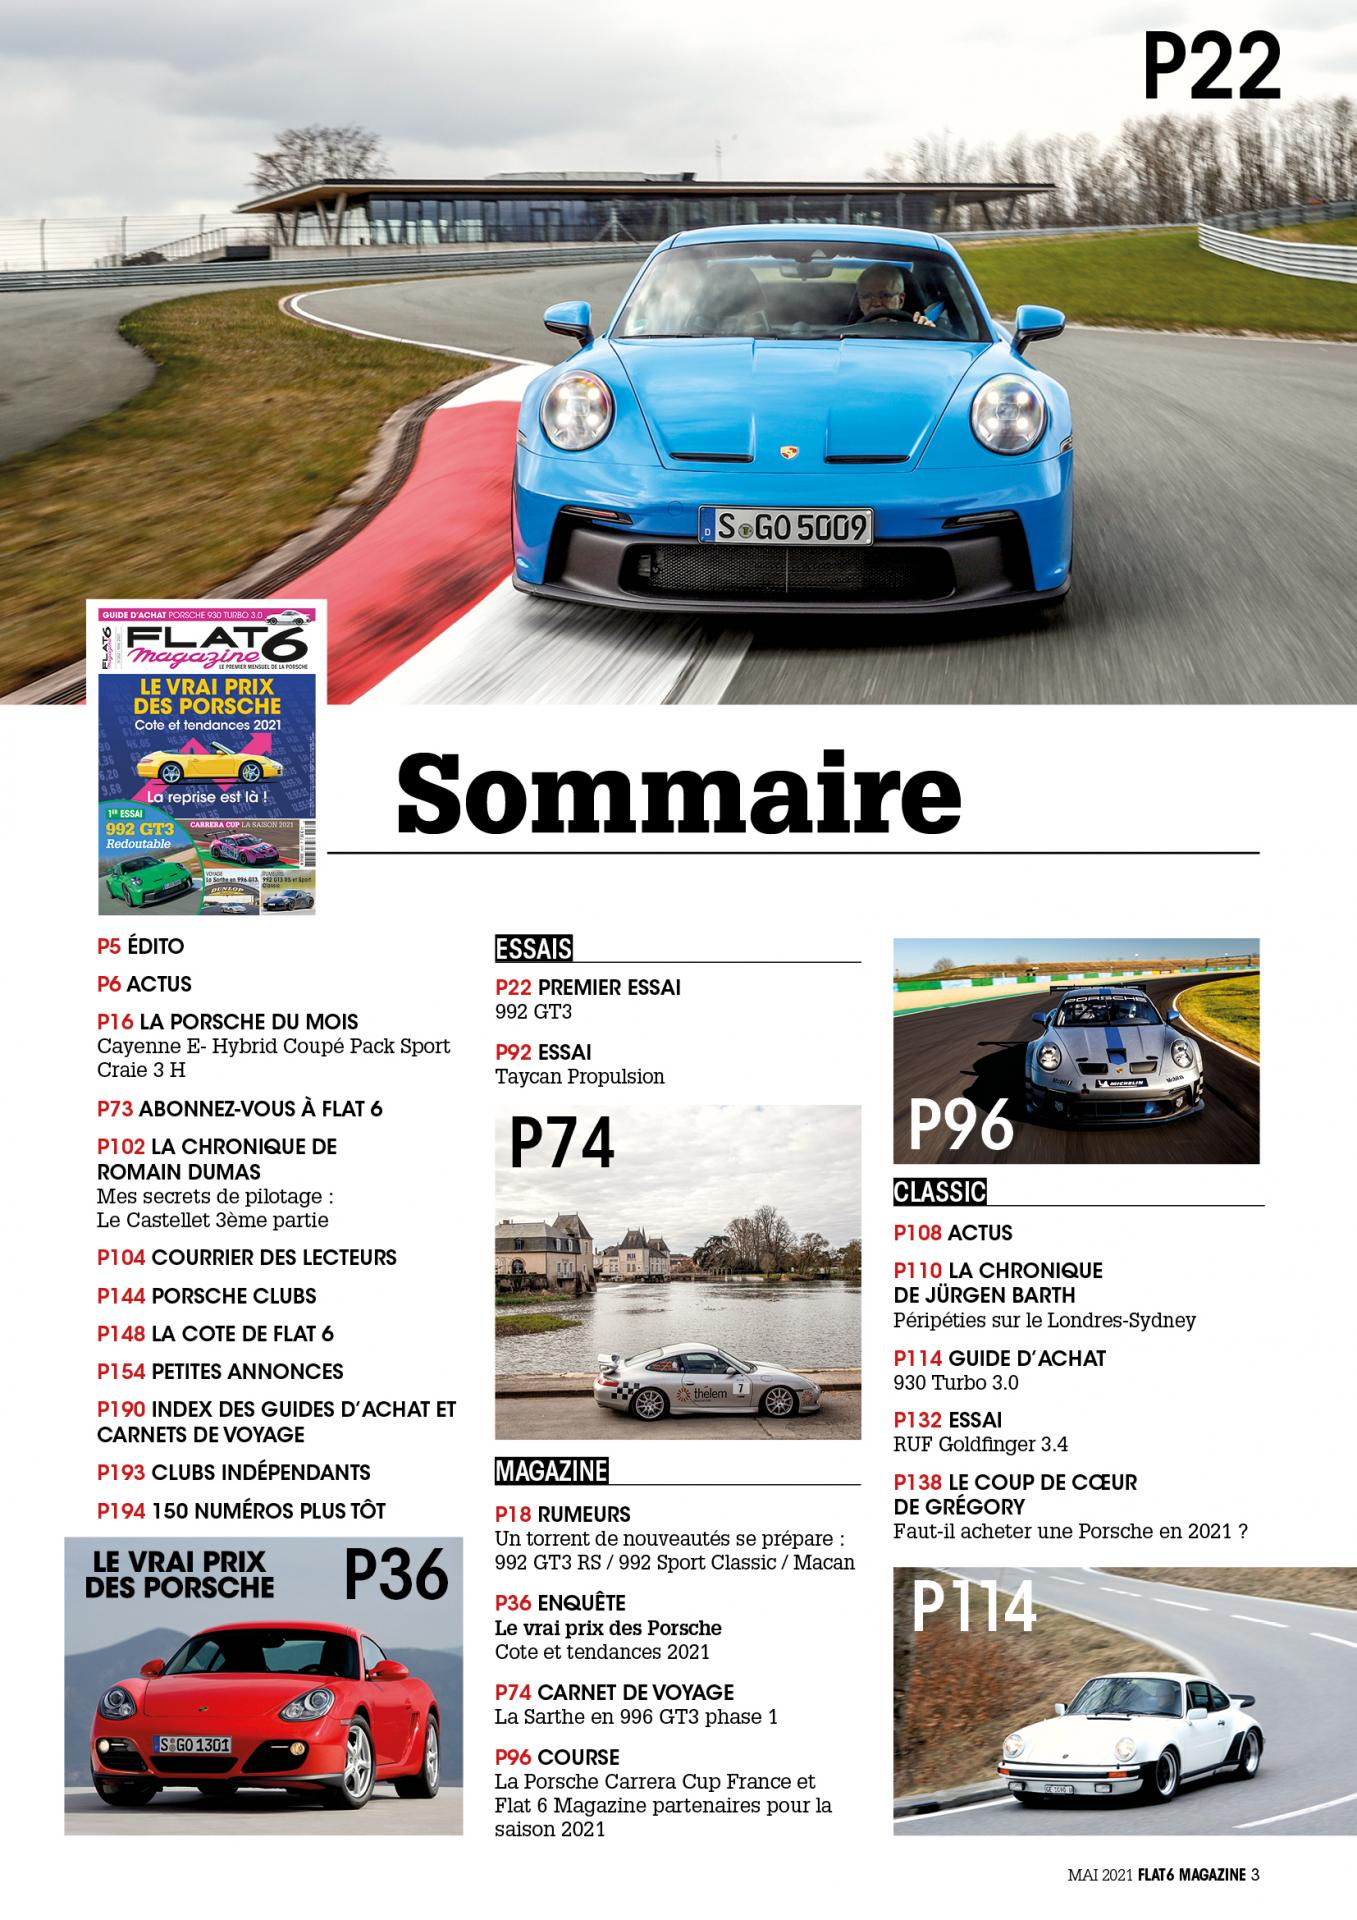 Sommaire362